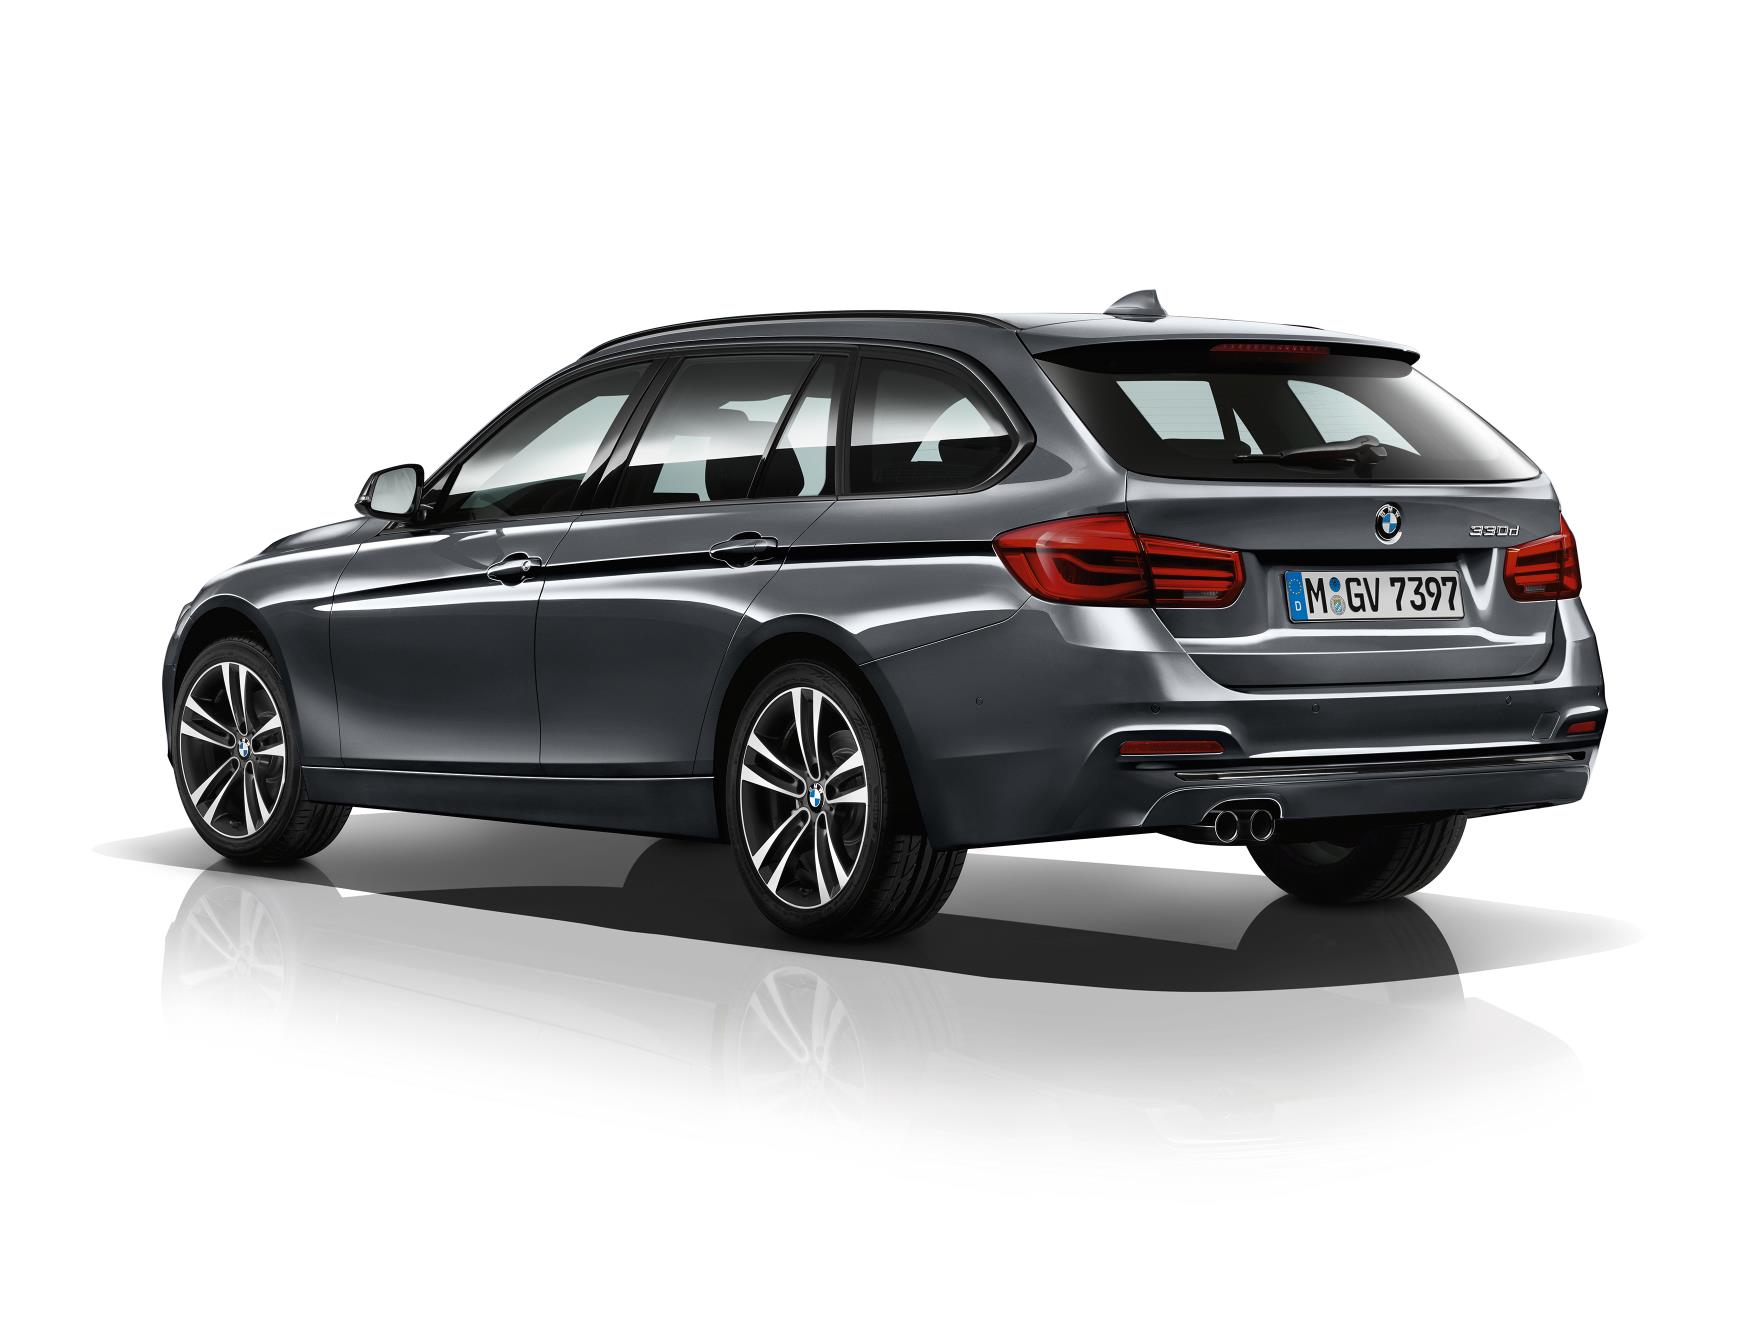 BMW 3 Series rear view in grey